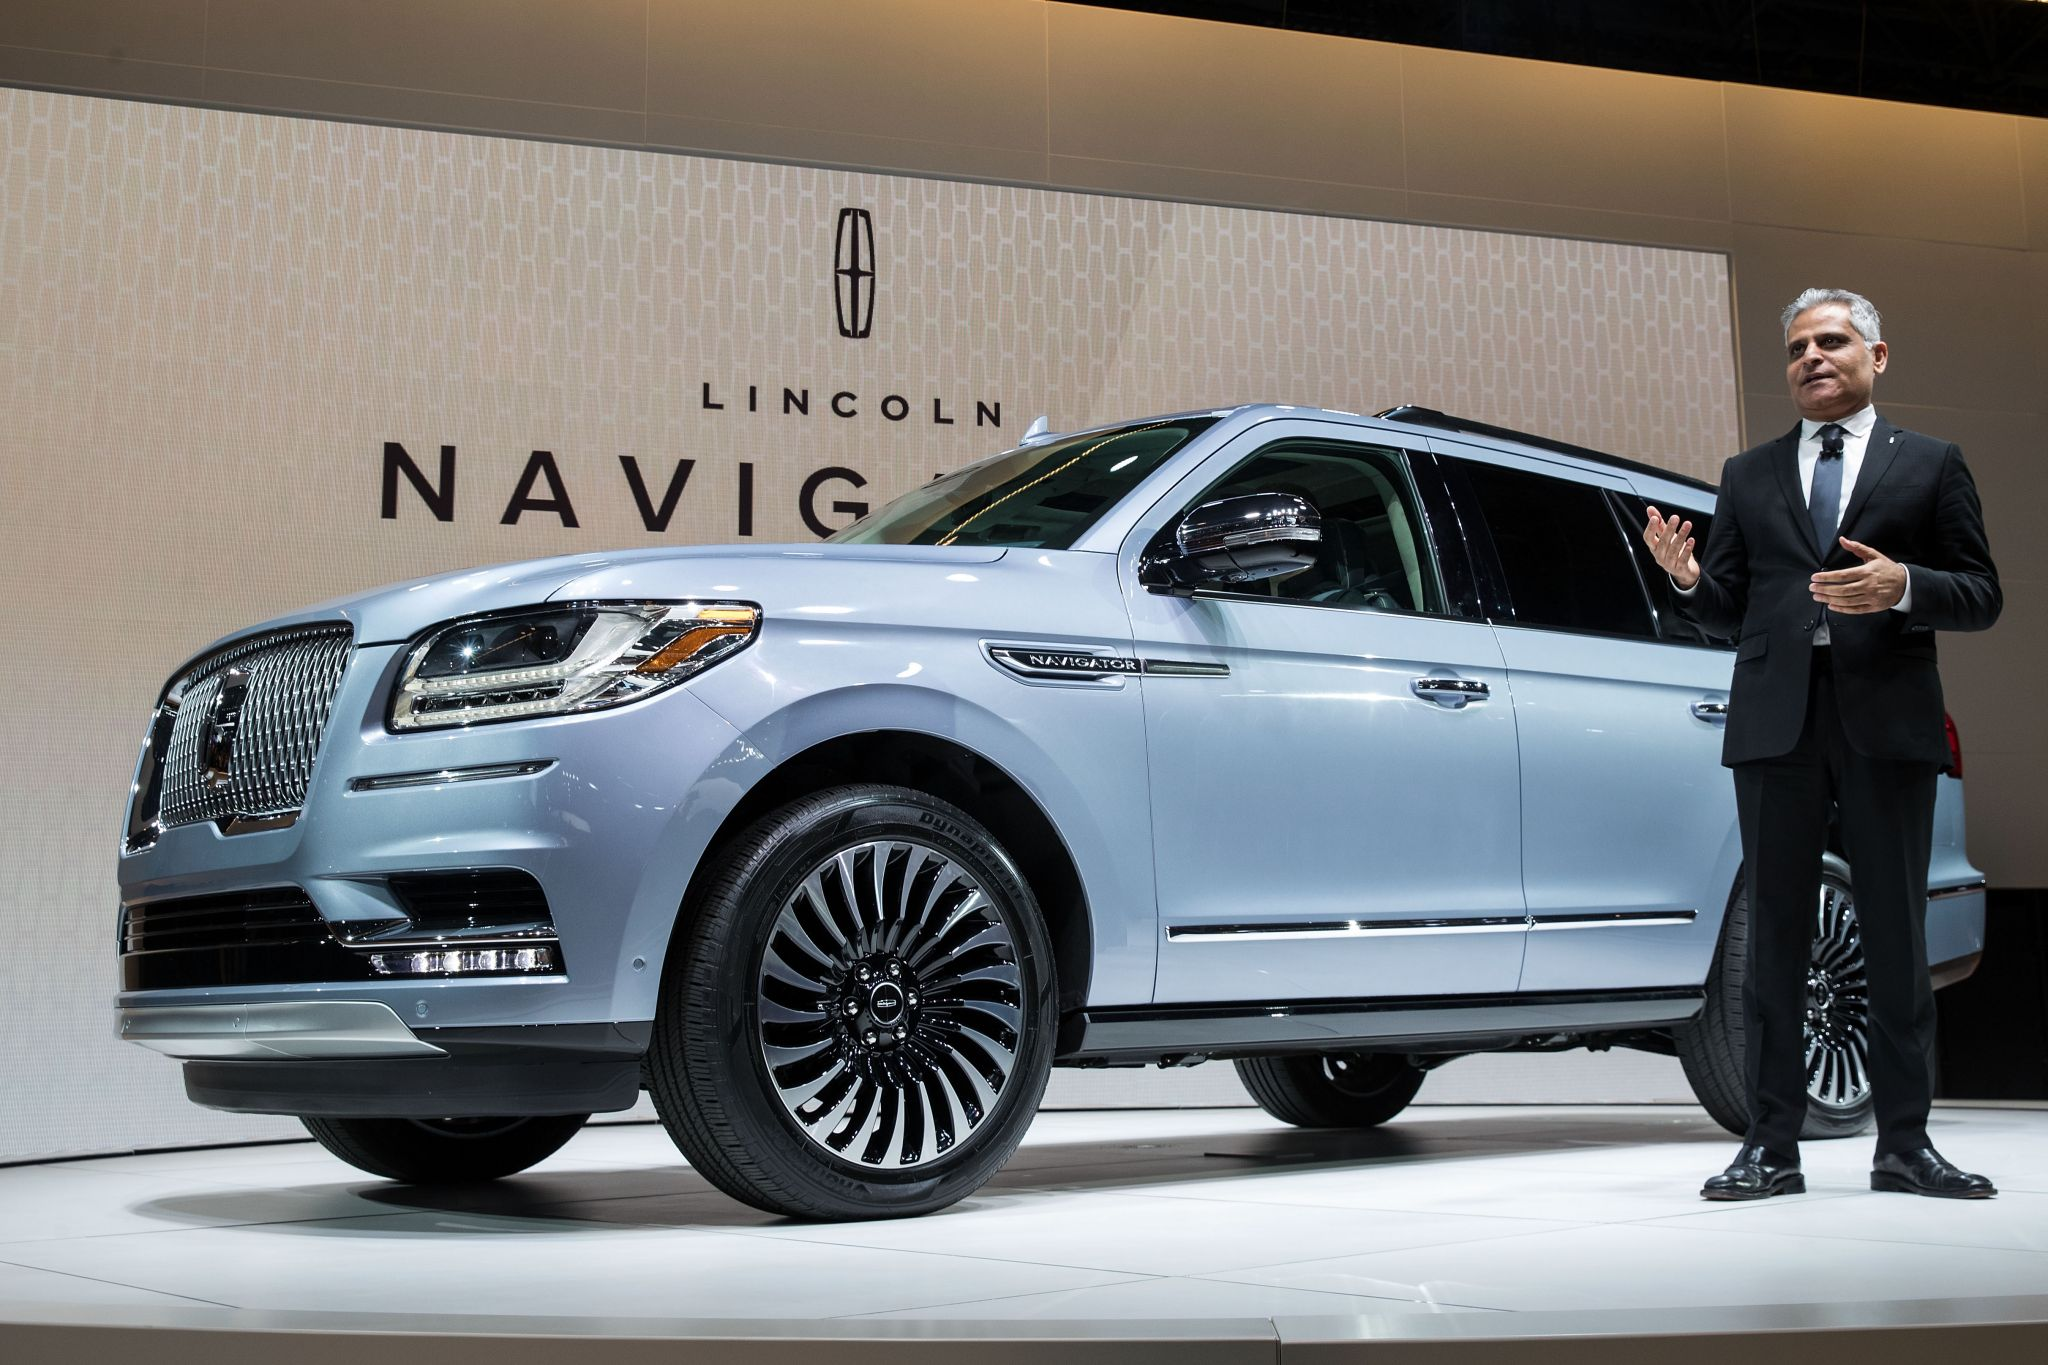 Rapper's ride reborn: Navigator charts comeback as family hauler